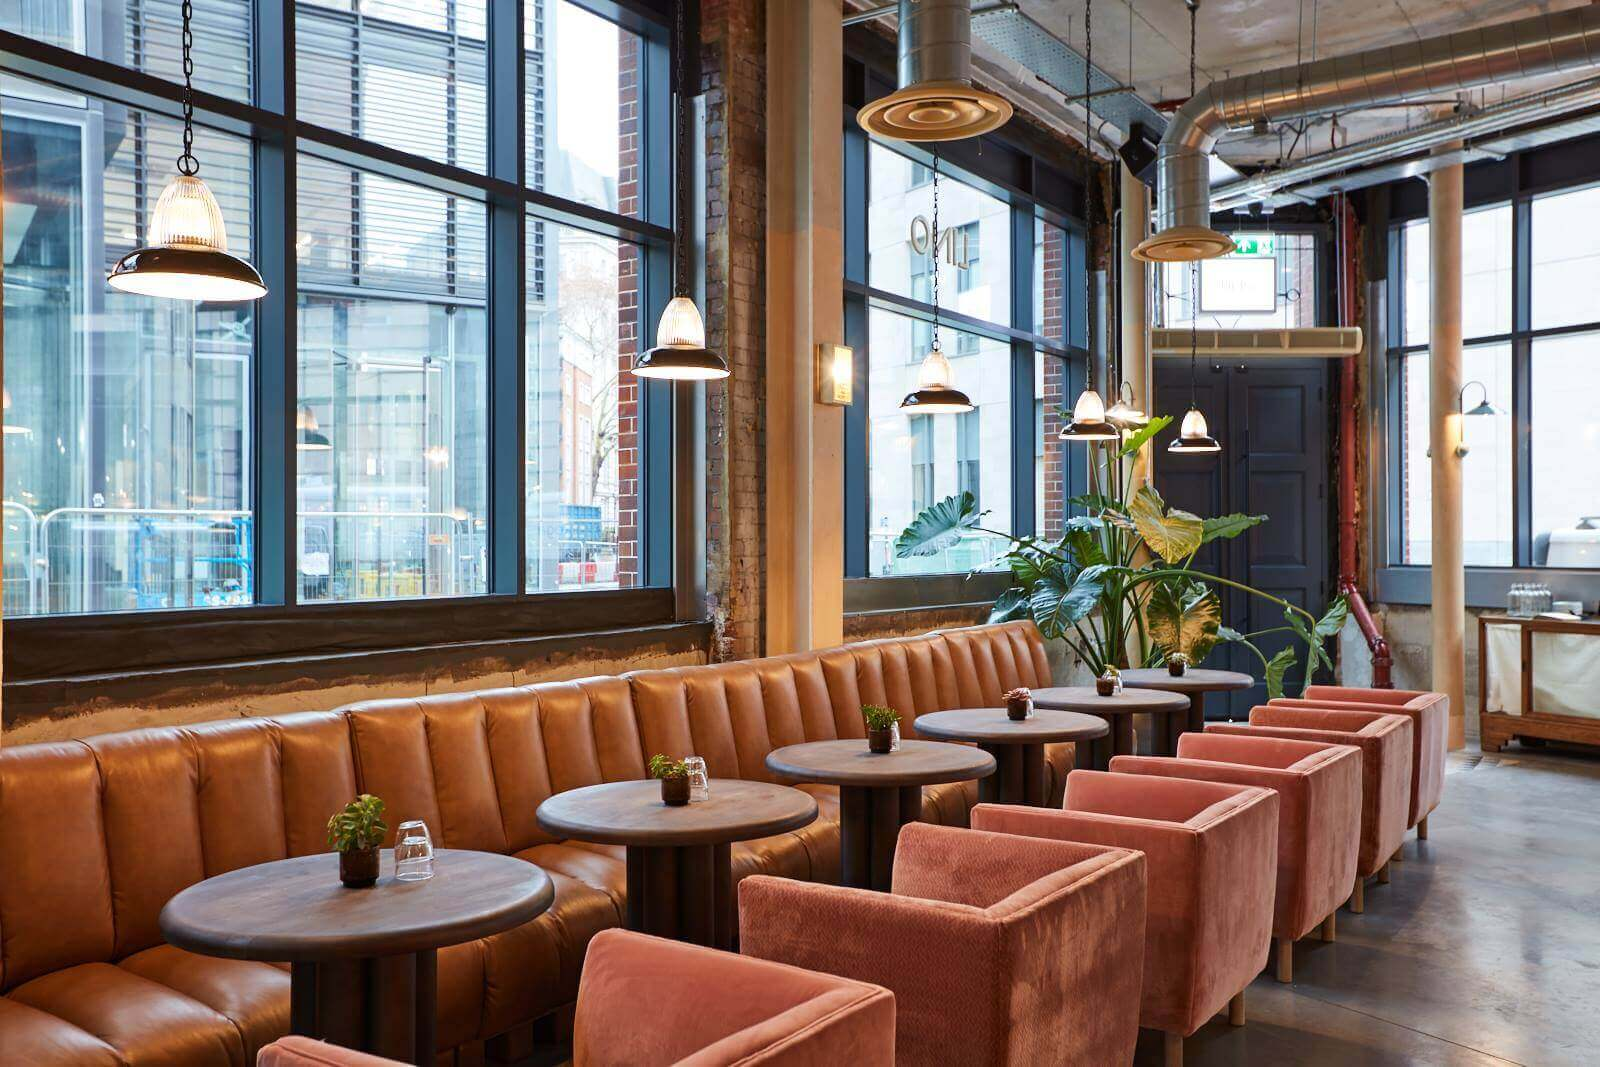 LINO London boasts re-purposed furniture for the eco-friendly and conscious, Brunch venu